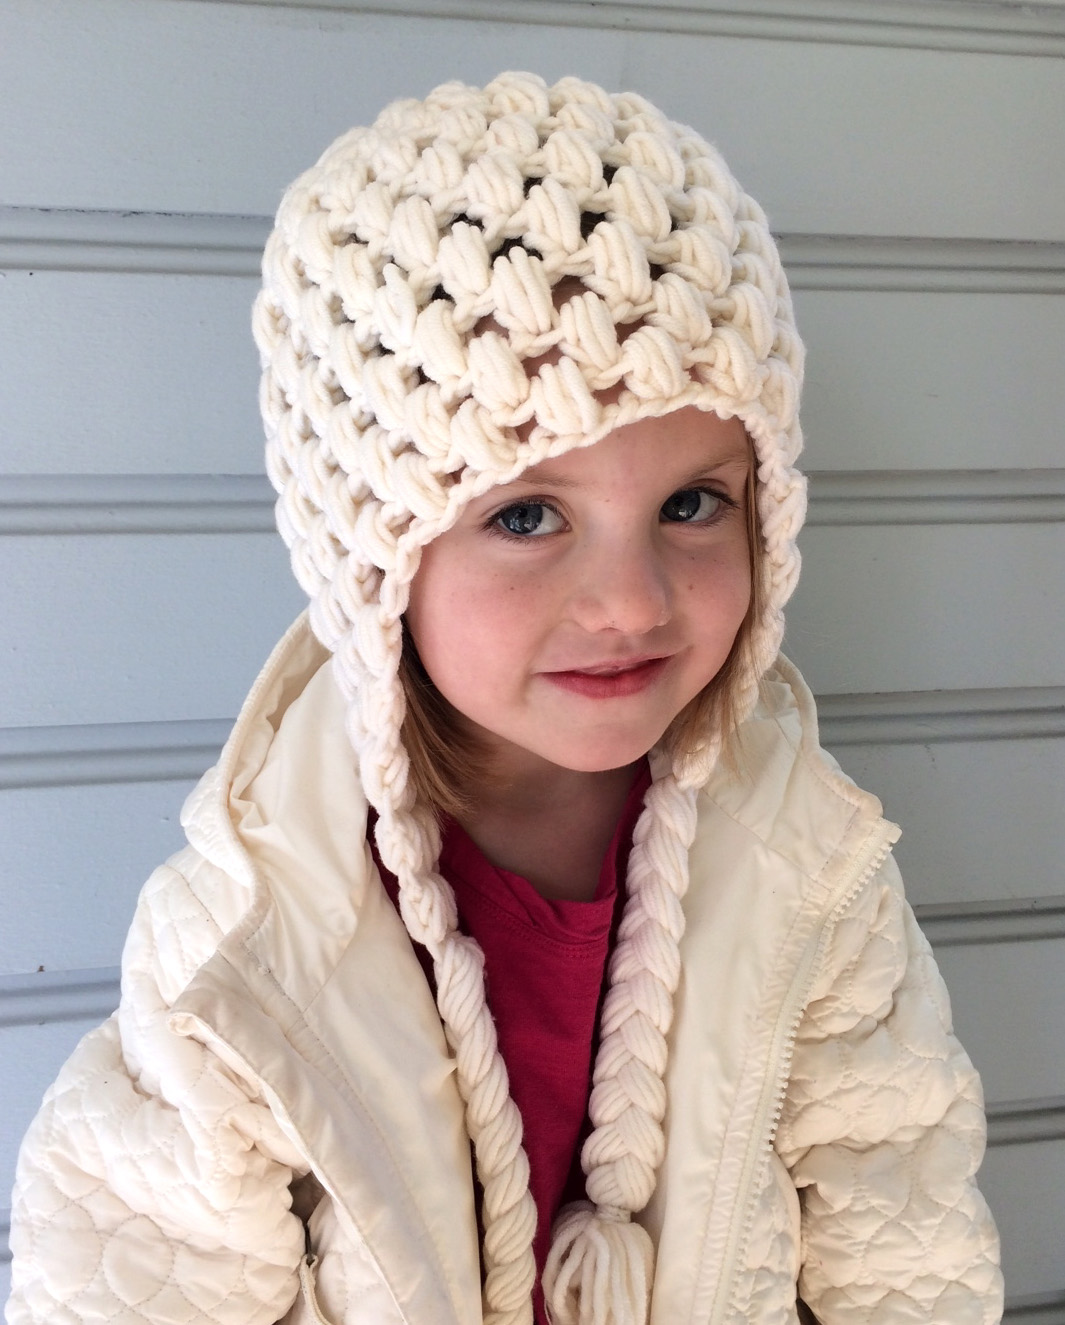 Crochet Hat Pattern Super Bulky Yarn : Chamonix Hat ? The Pipers Girls